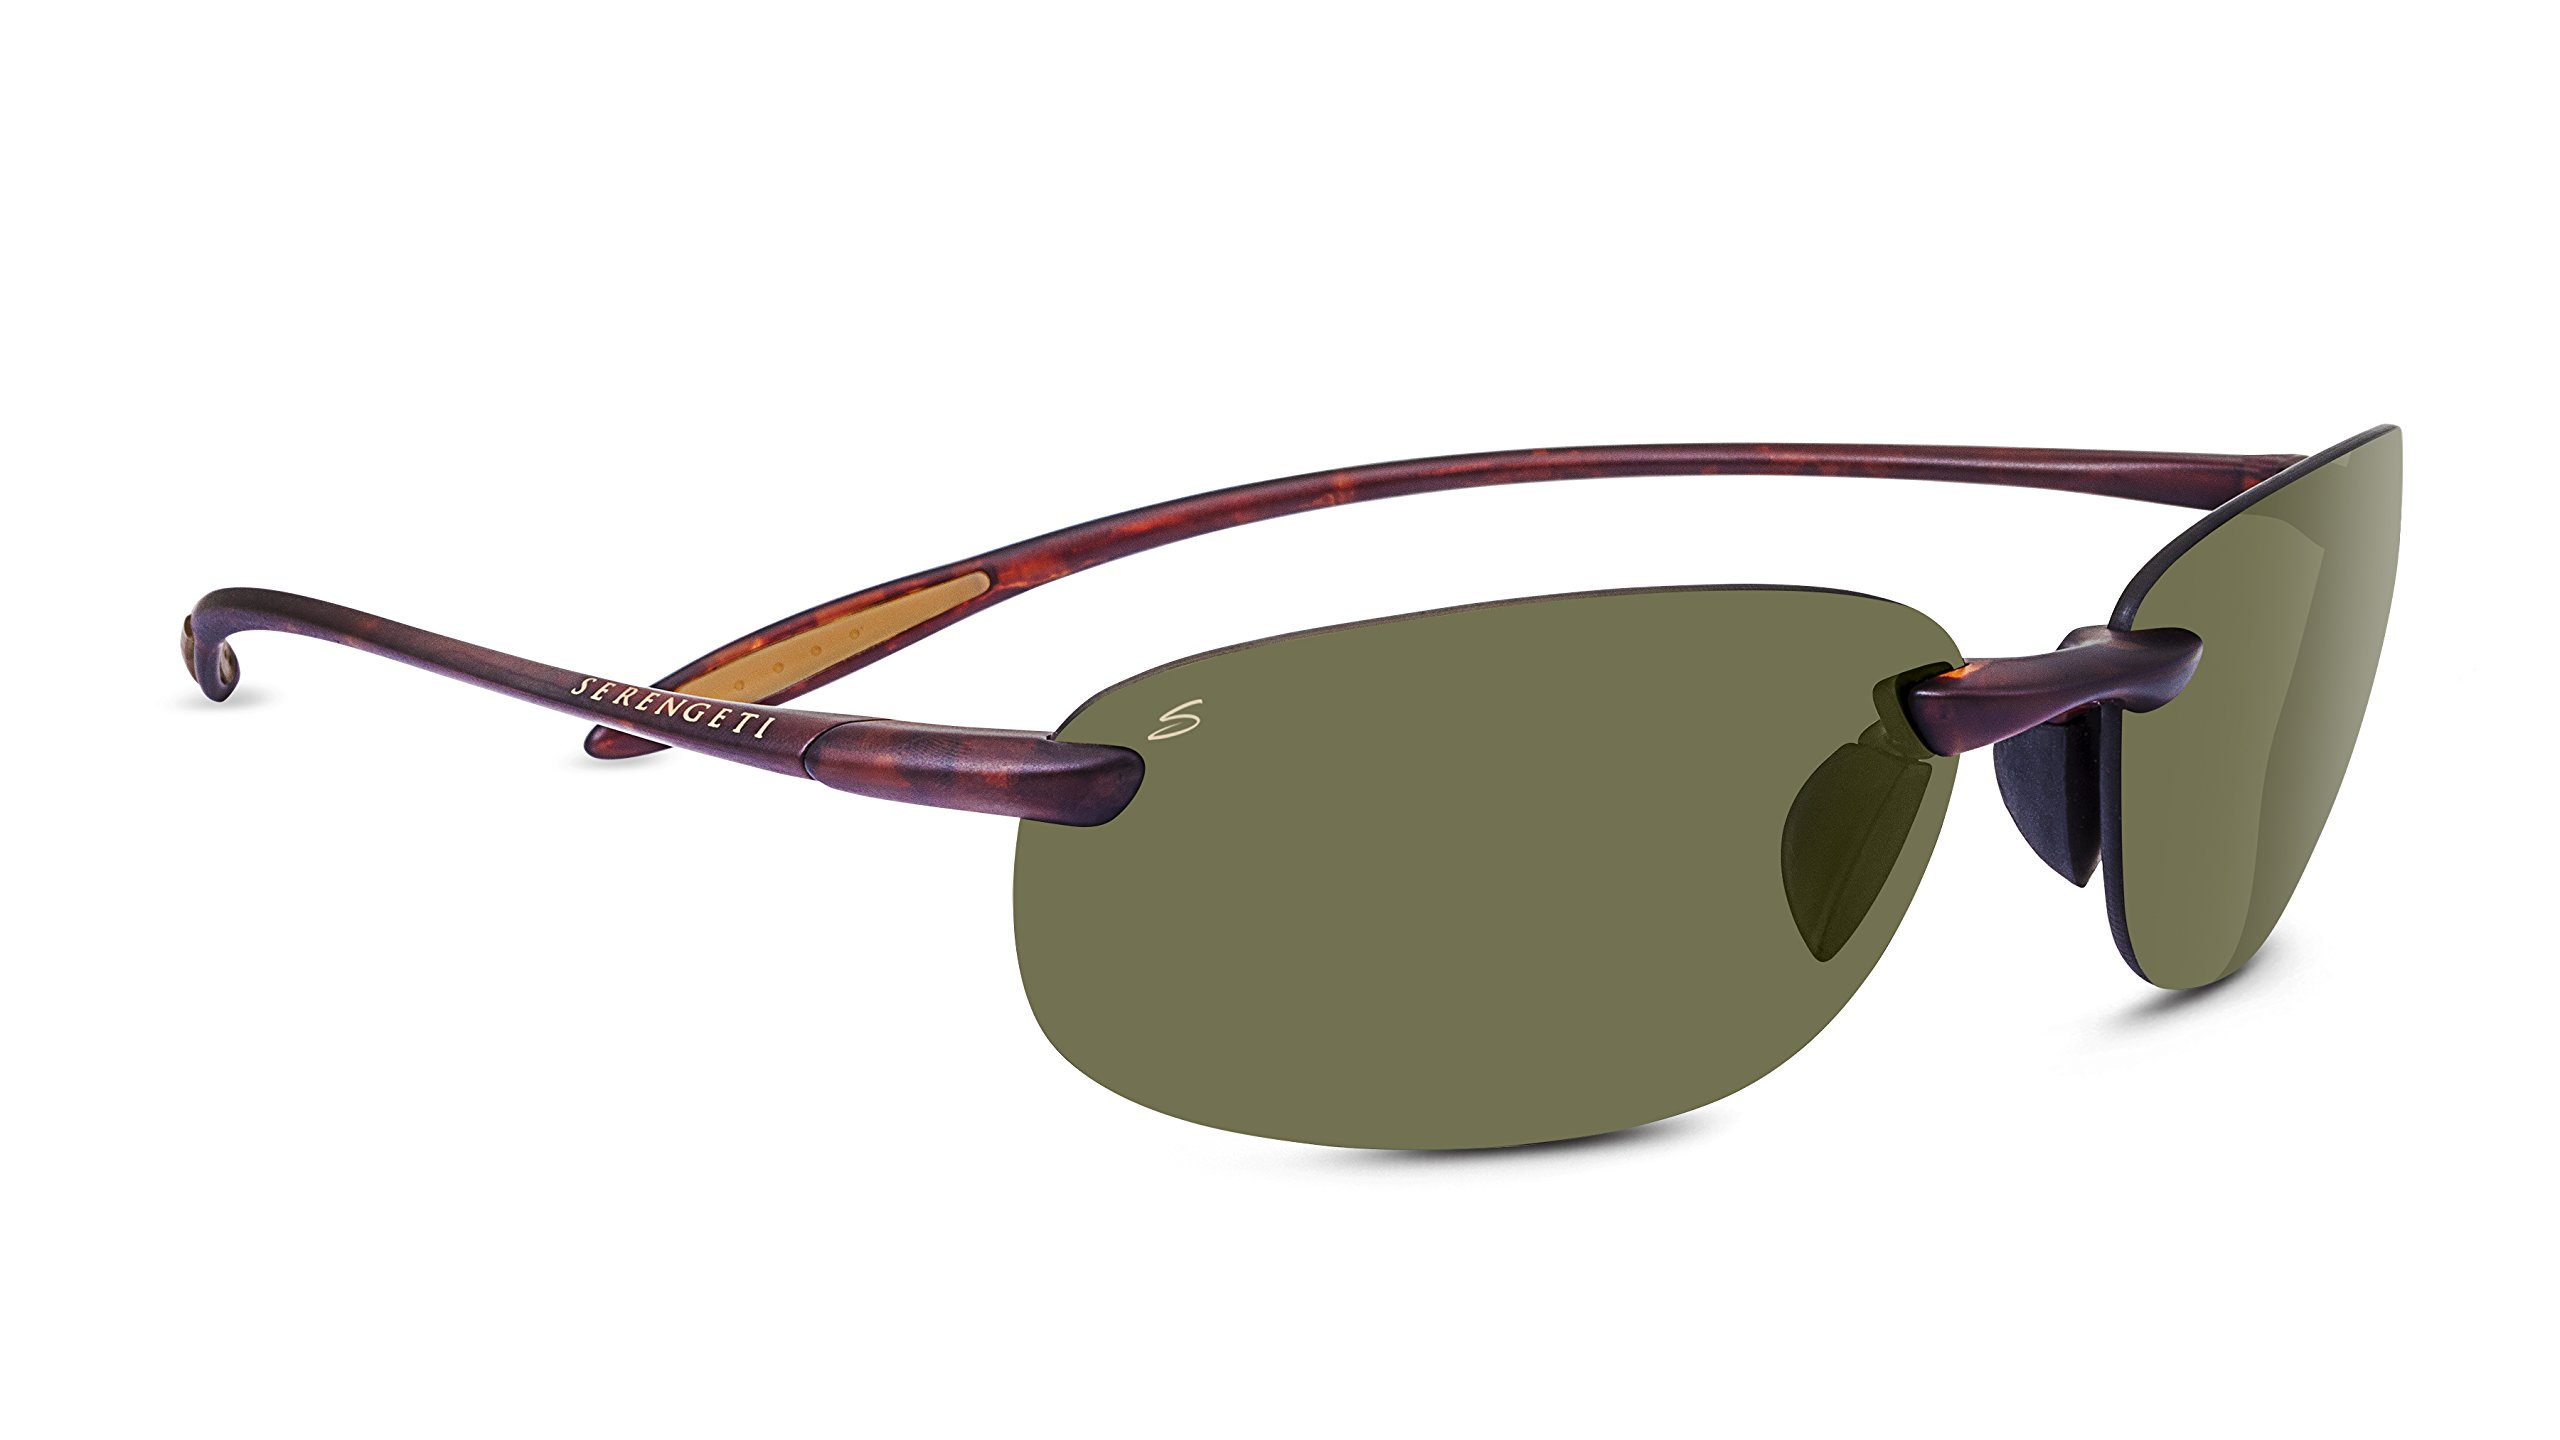 Serengeti 8370 Nuvino Polar PhD 555NM Sunglasses, Satin Tortoise Frame